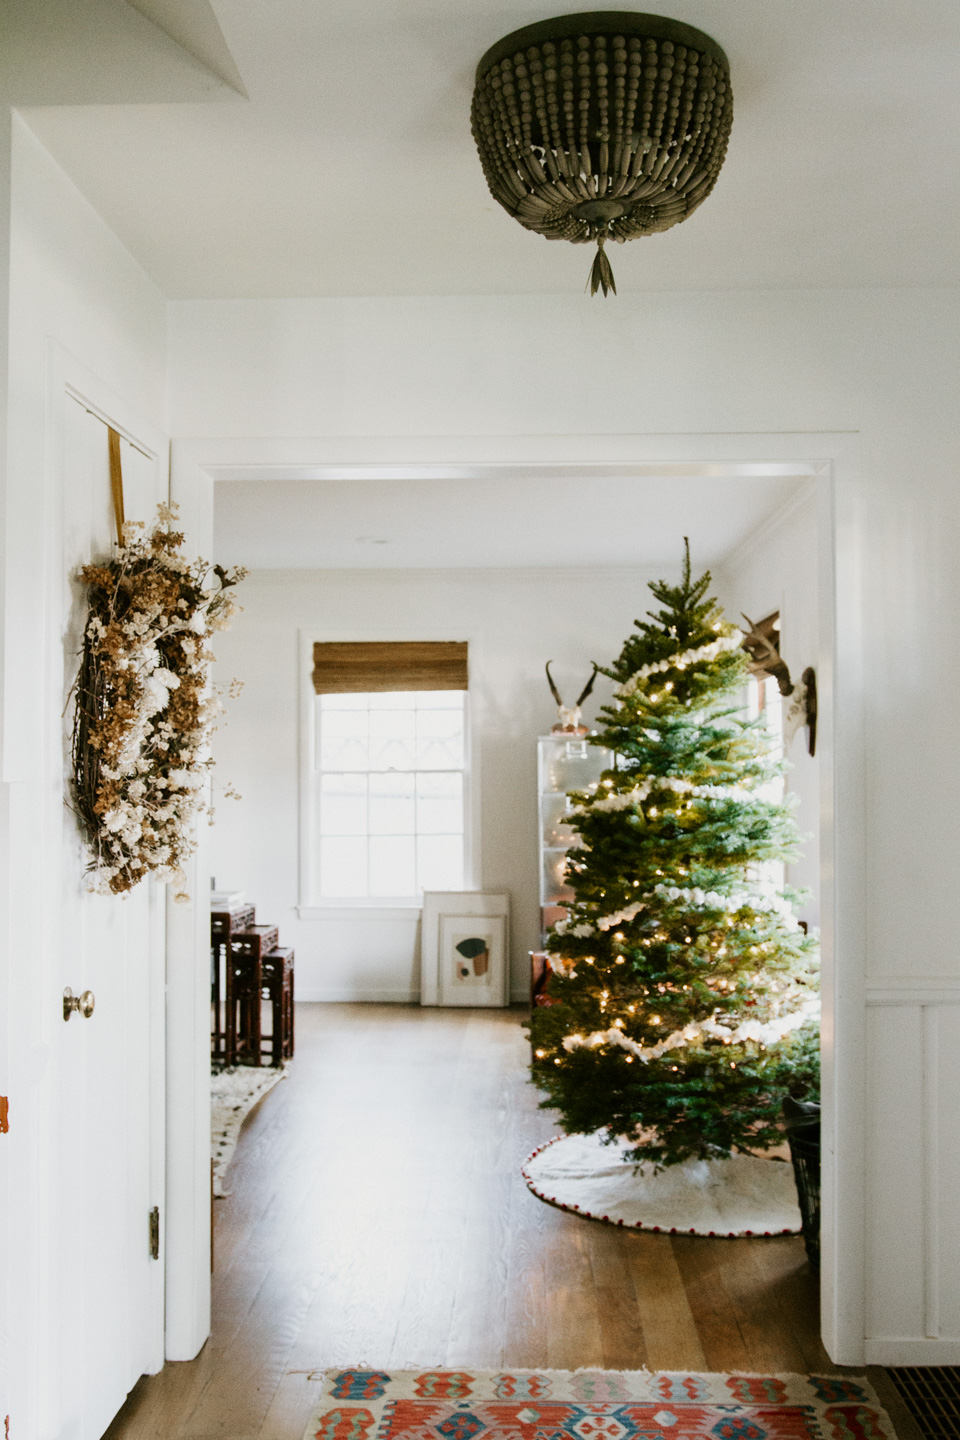 Holiday Decor You Can Leave Up Through New Years